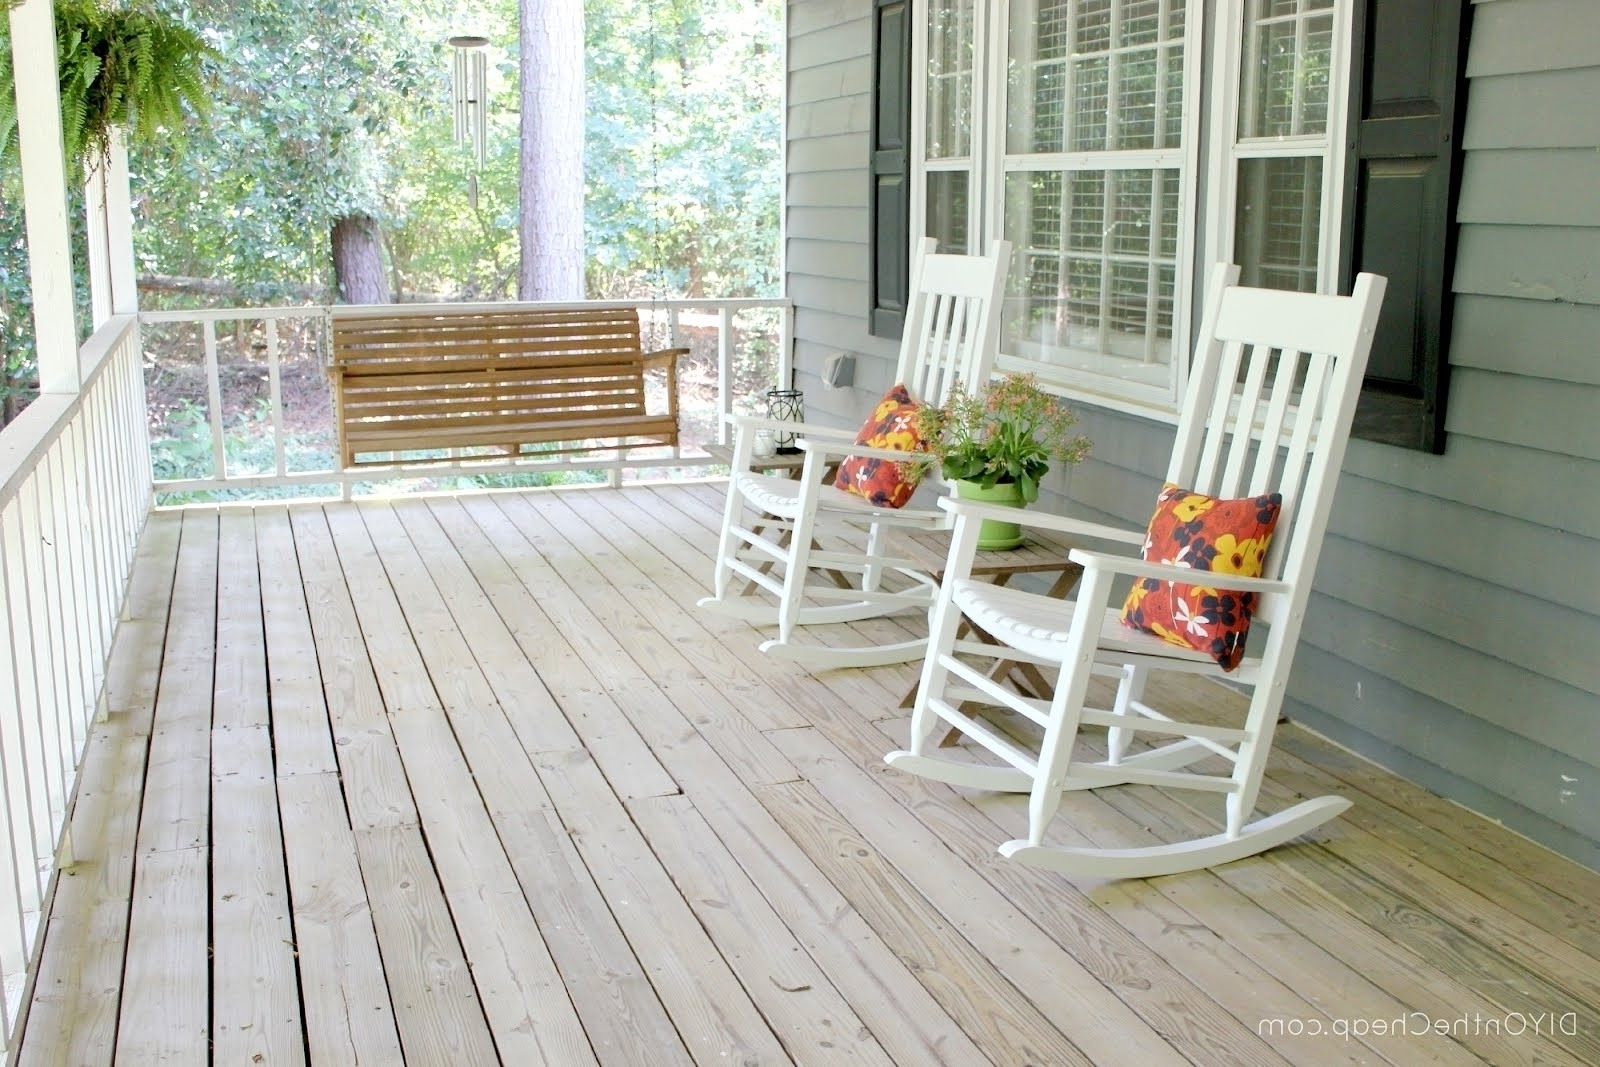 Living Room Furniture : Astounding Rocking Chair Front Porch Is Like Intended For Most Recently Released Rocking Chairs For Front Porch (View 4 of 15)